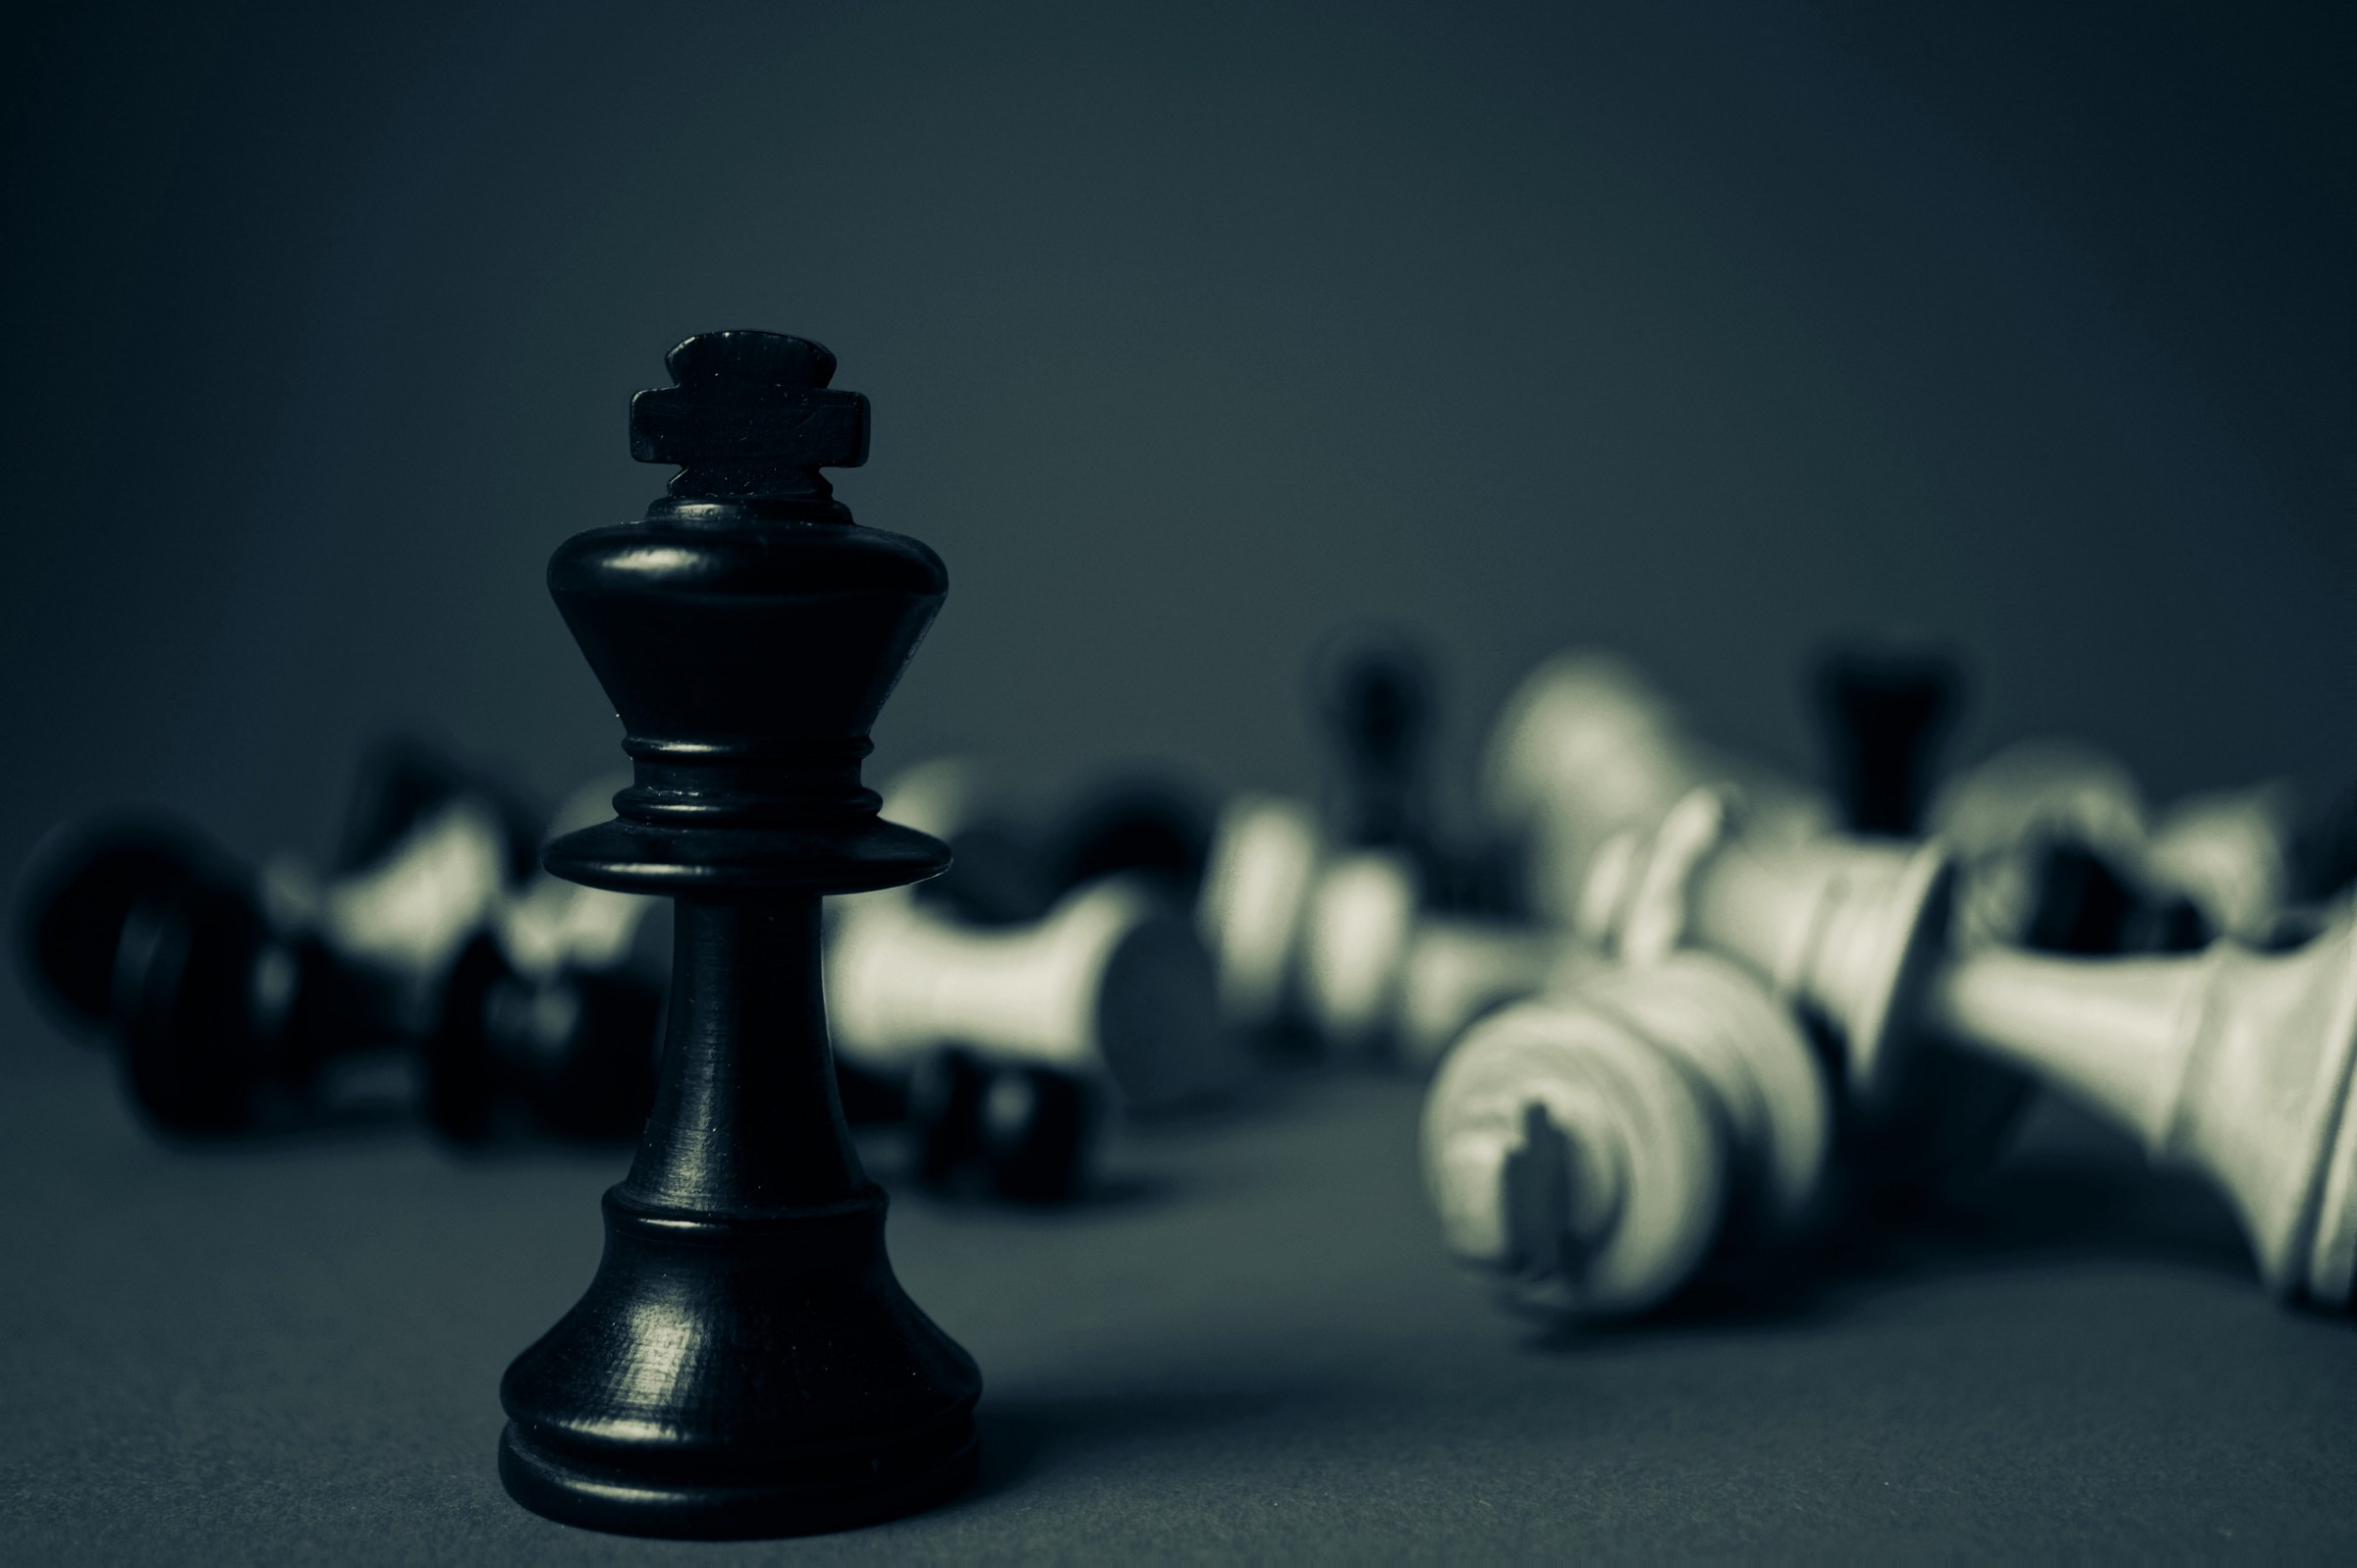 c2fee4fb22ec8 Predicting Professional Players' Chess Moves with Deep Learning